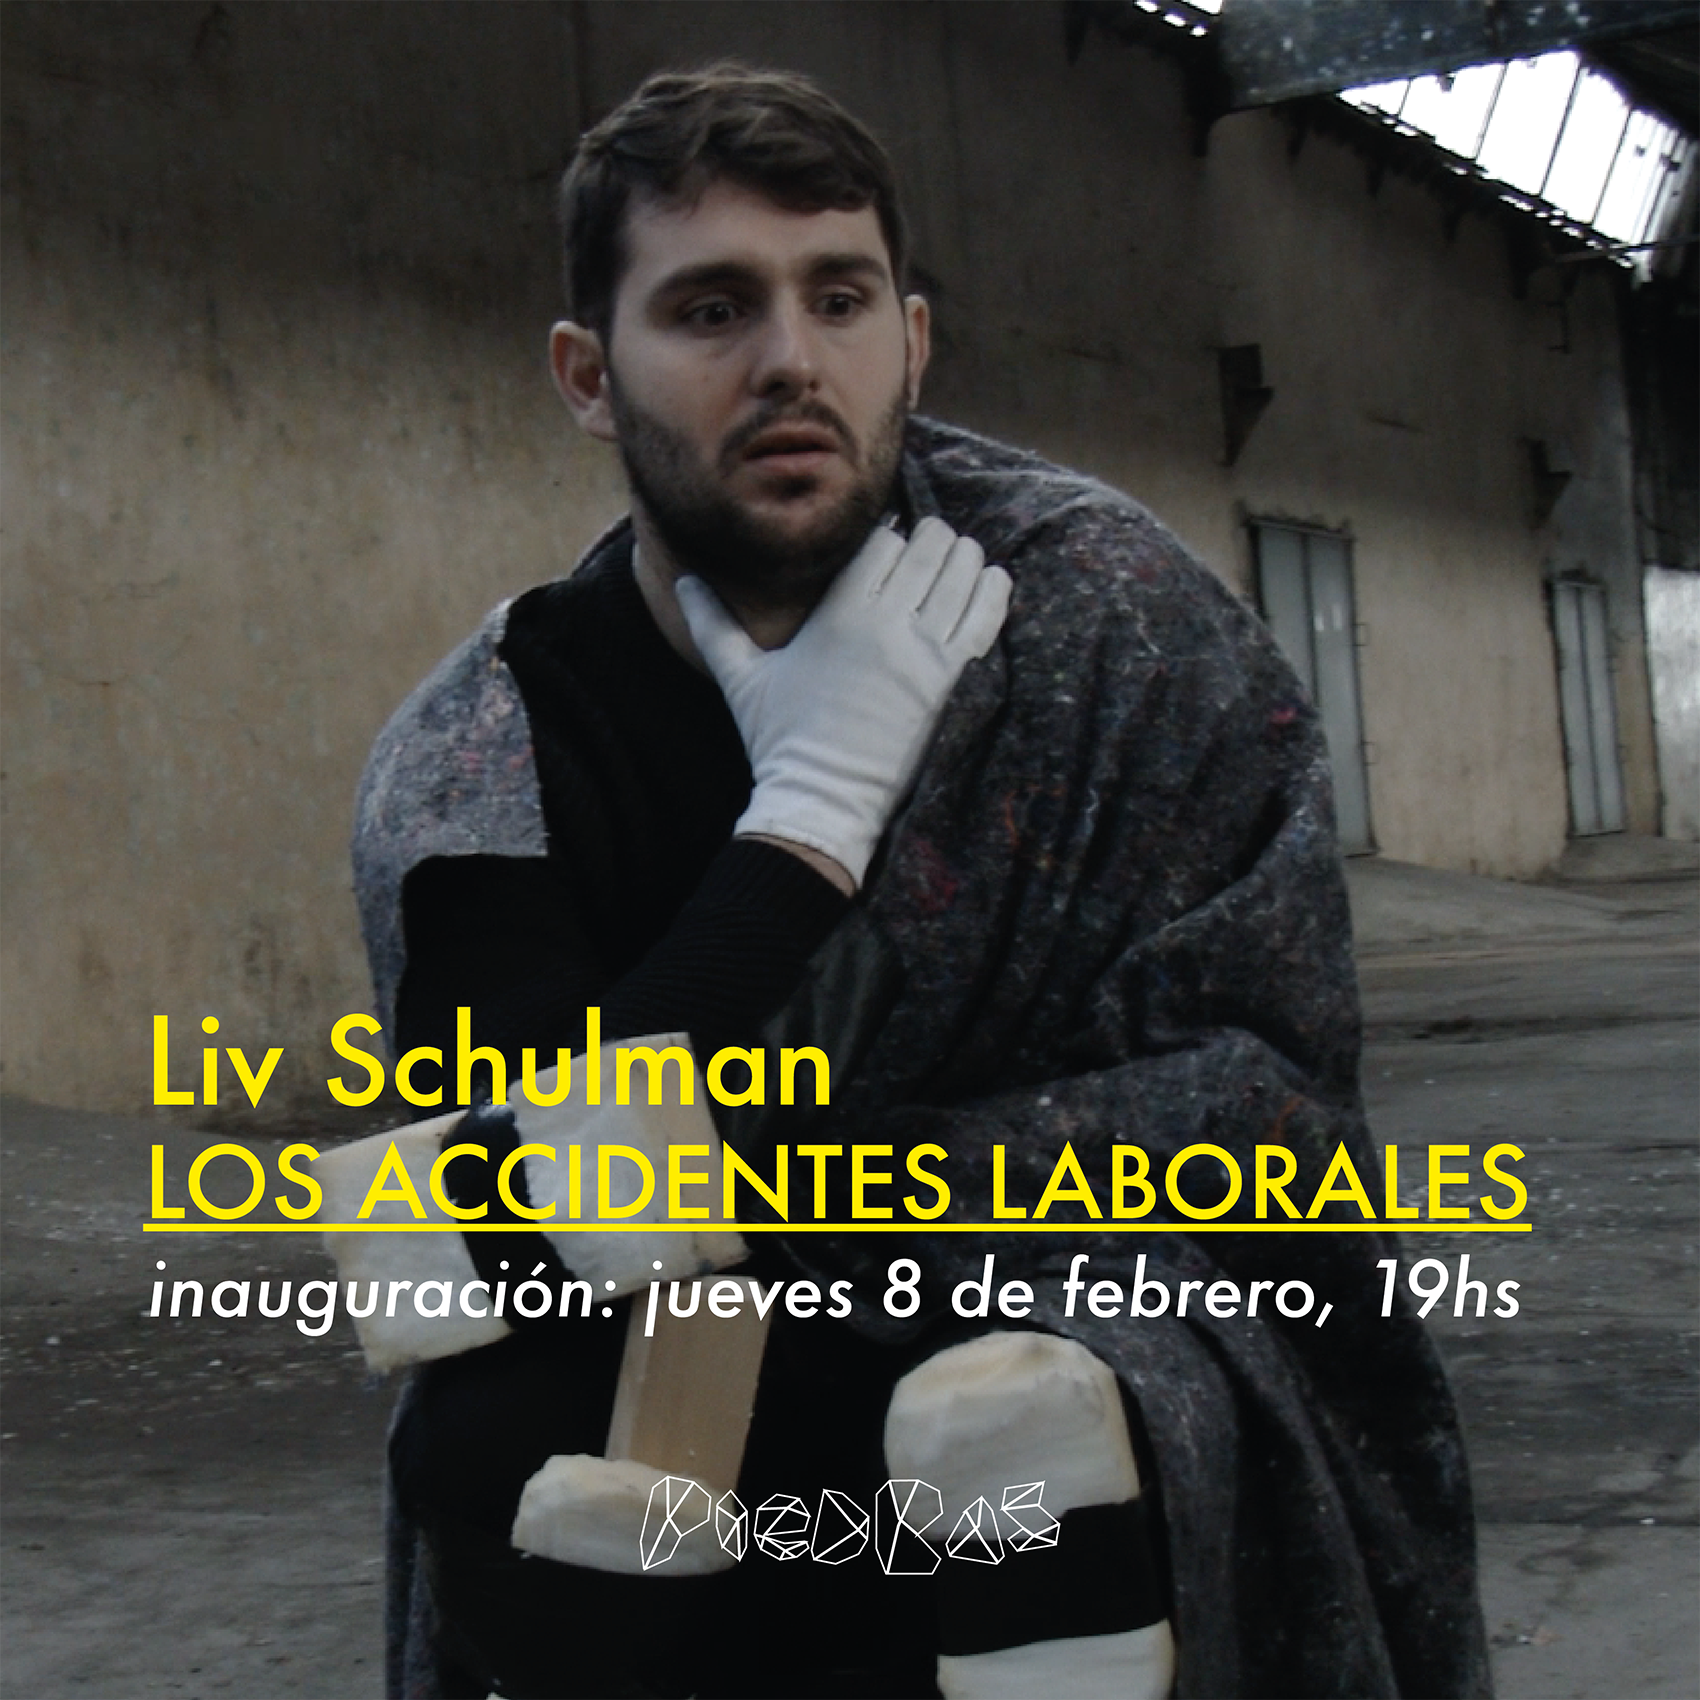 Liv Schulman _ Los accidentes laborales